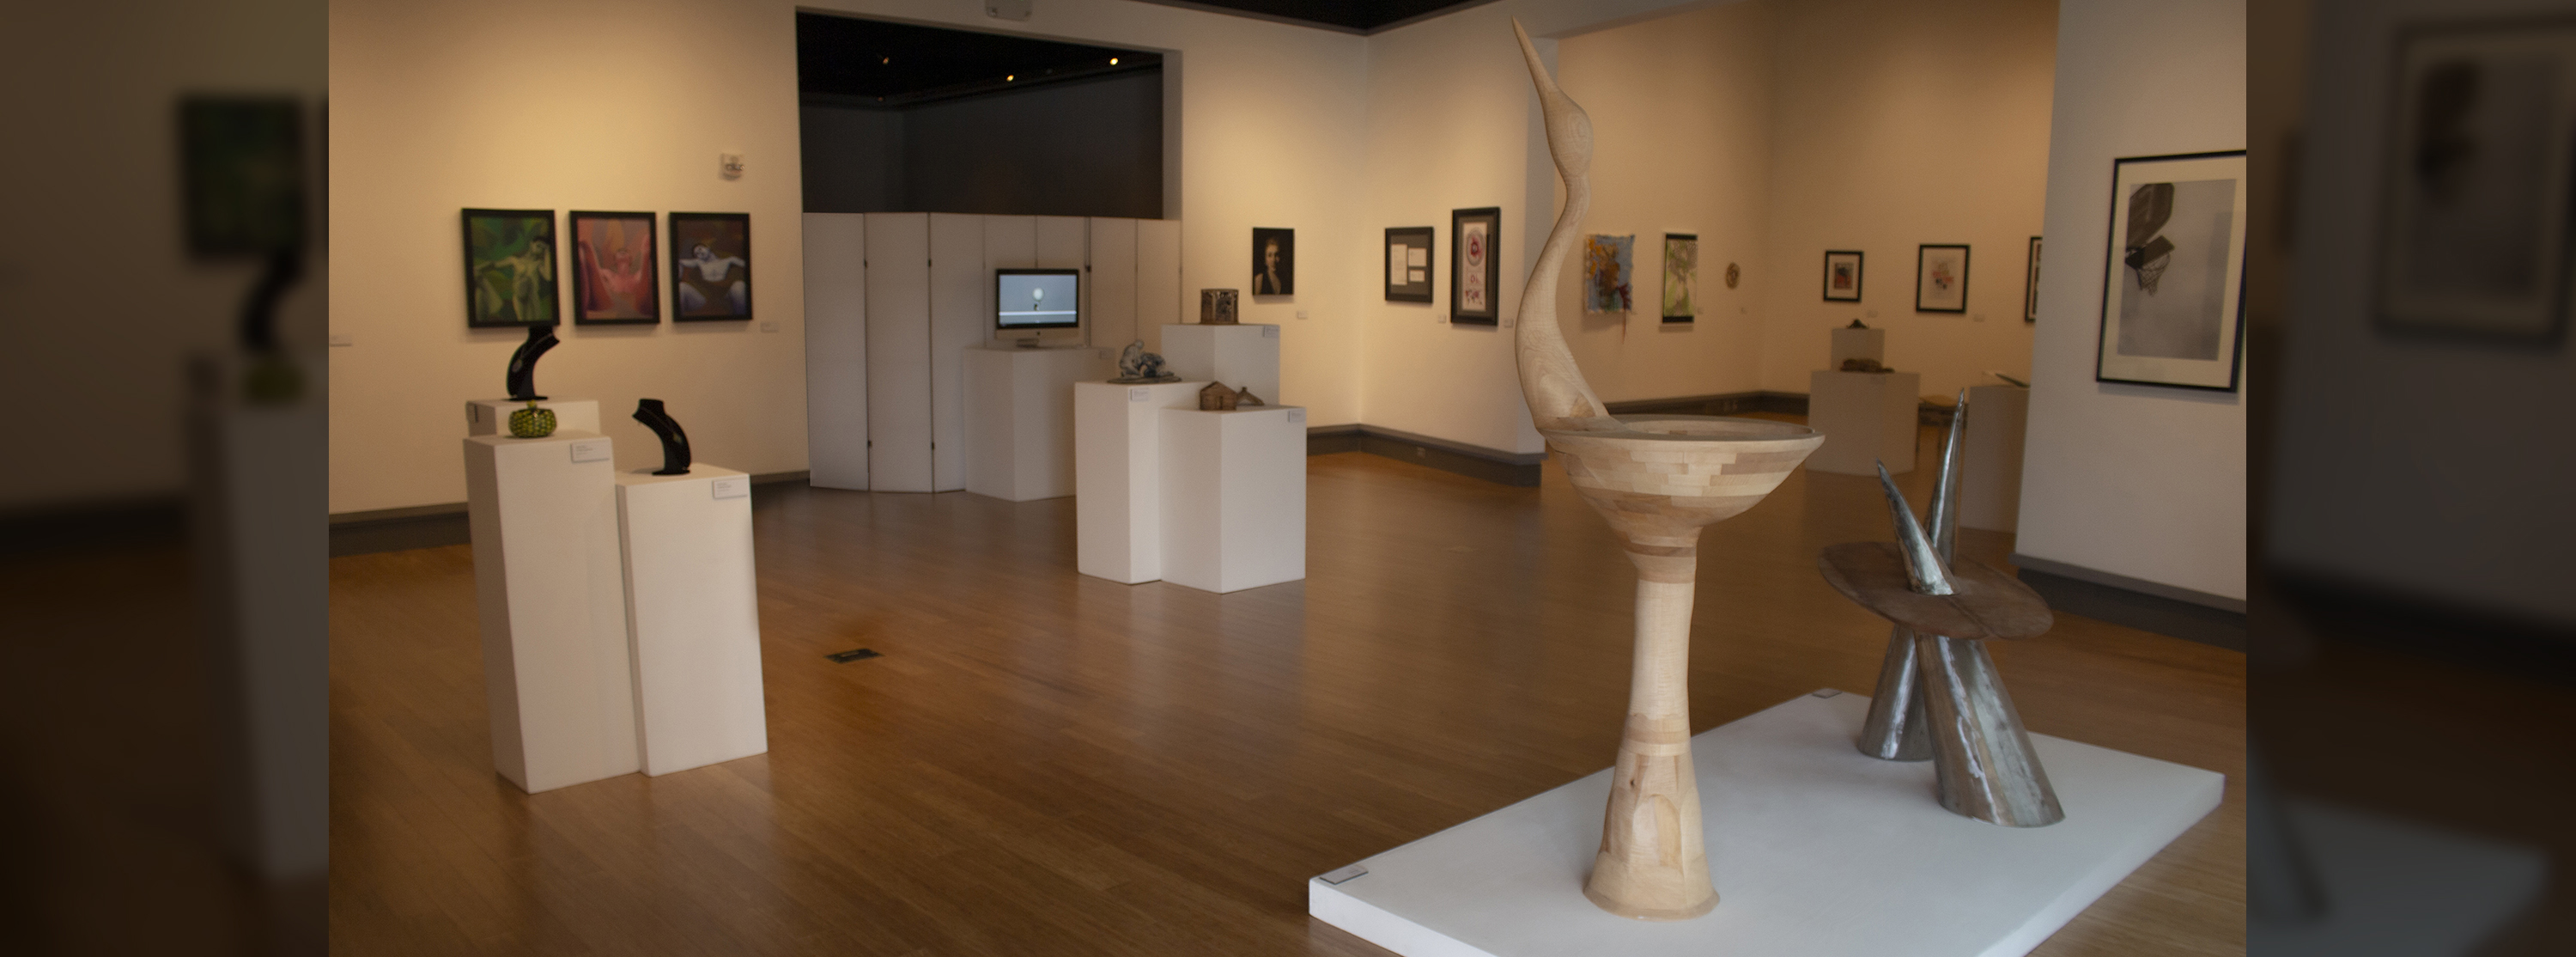 View of the McCutchan/Pace gallery art pieces on display